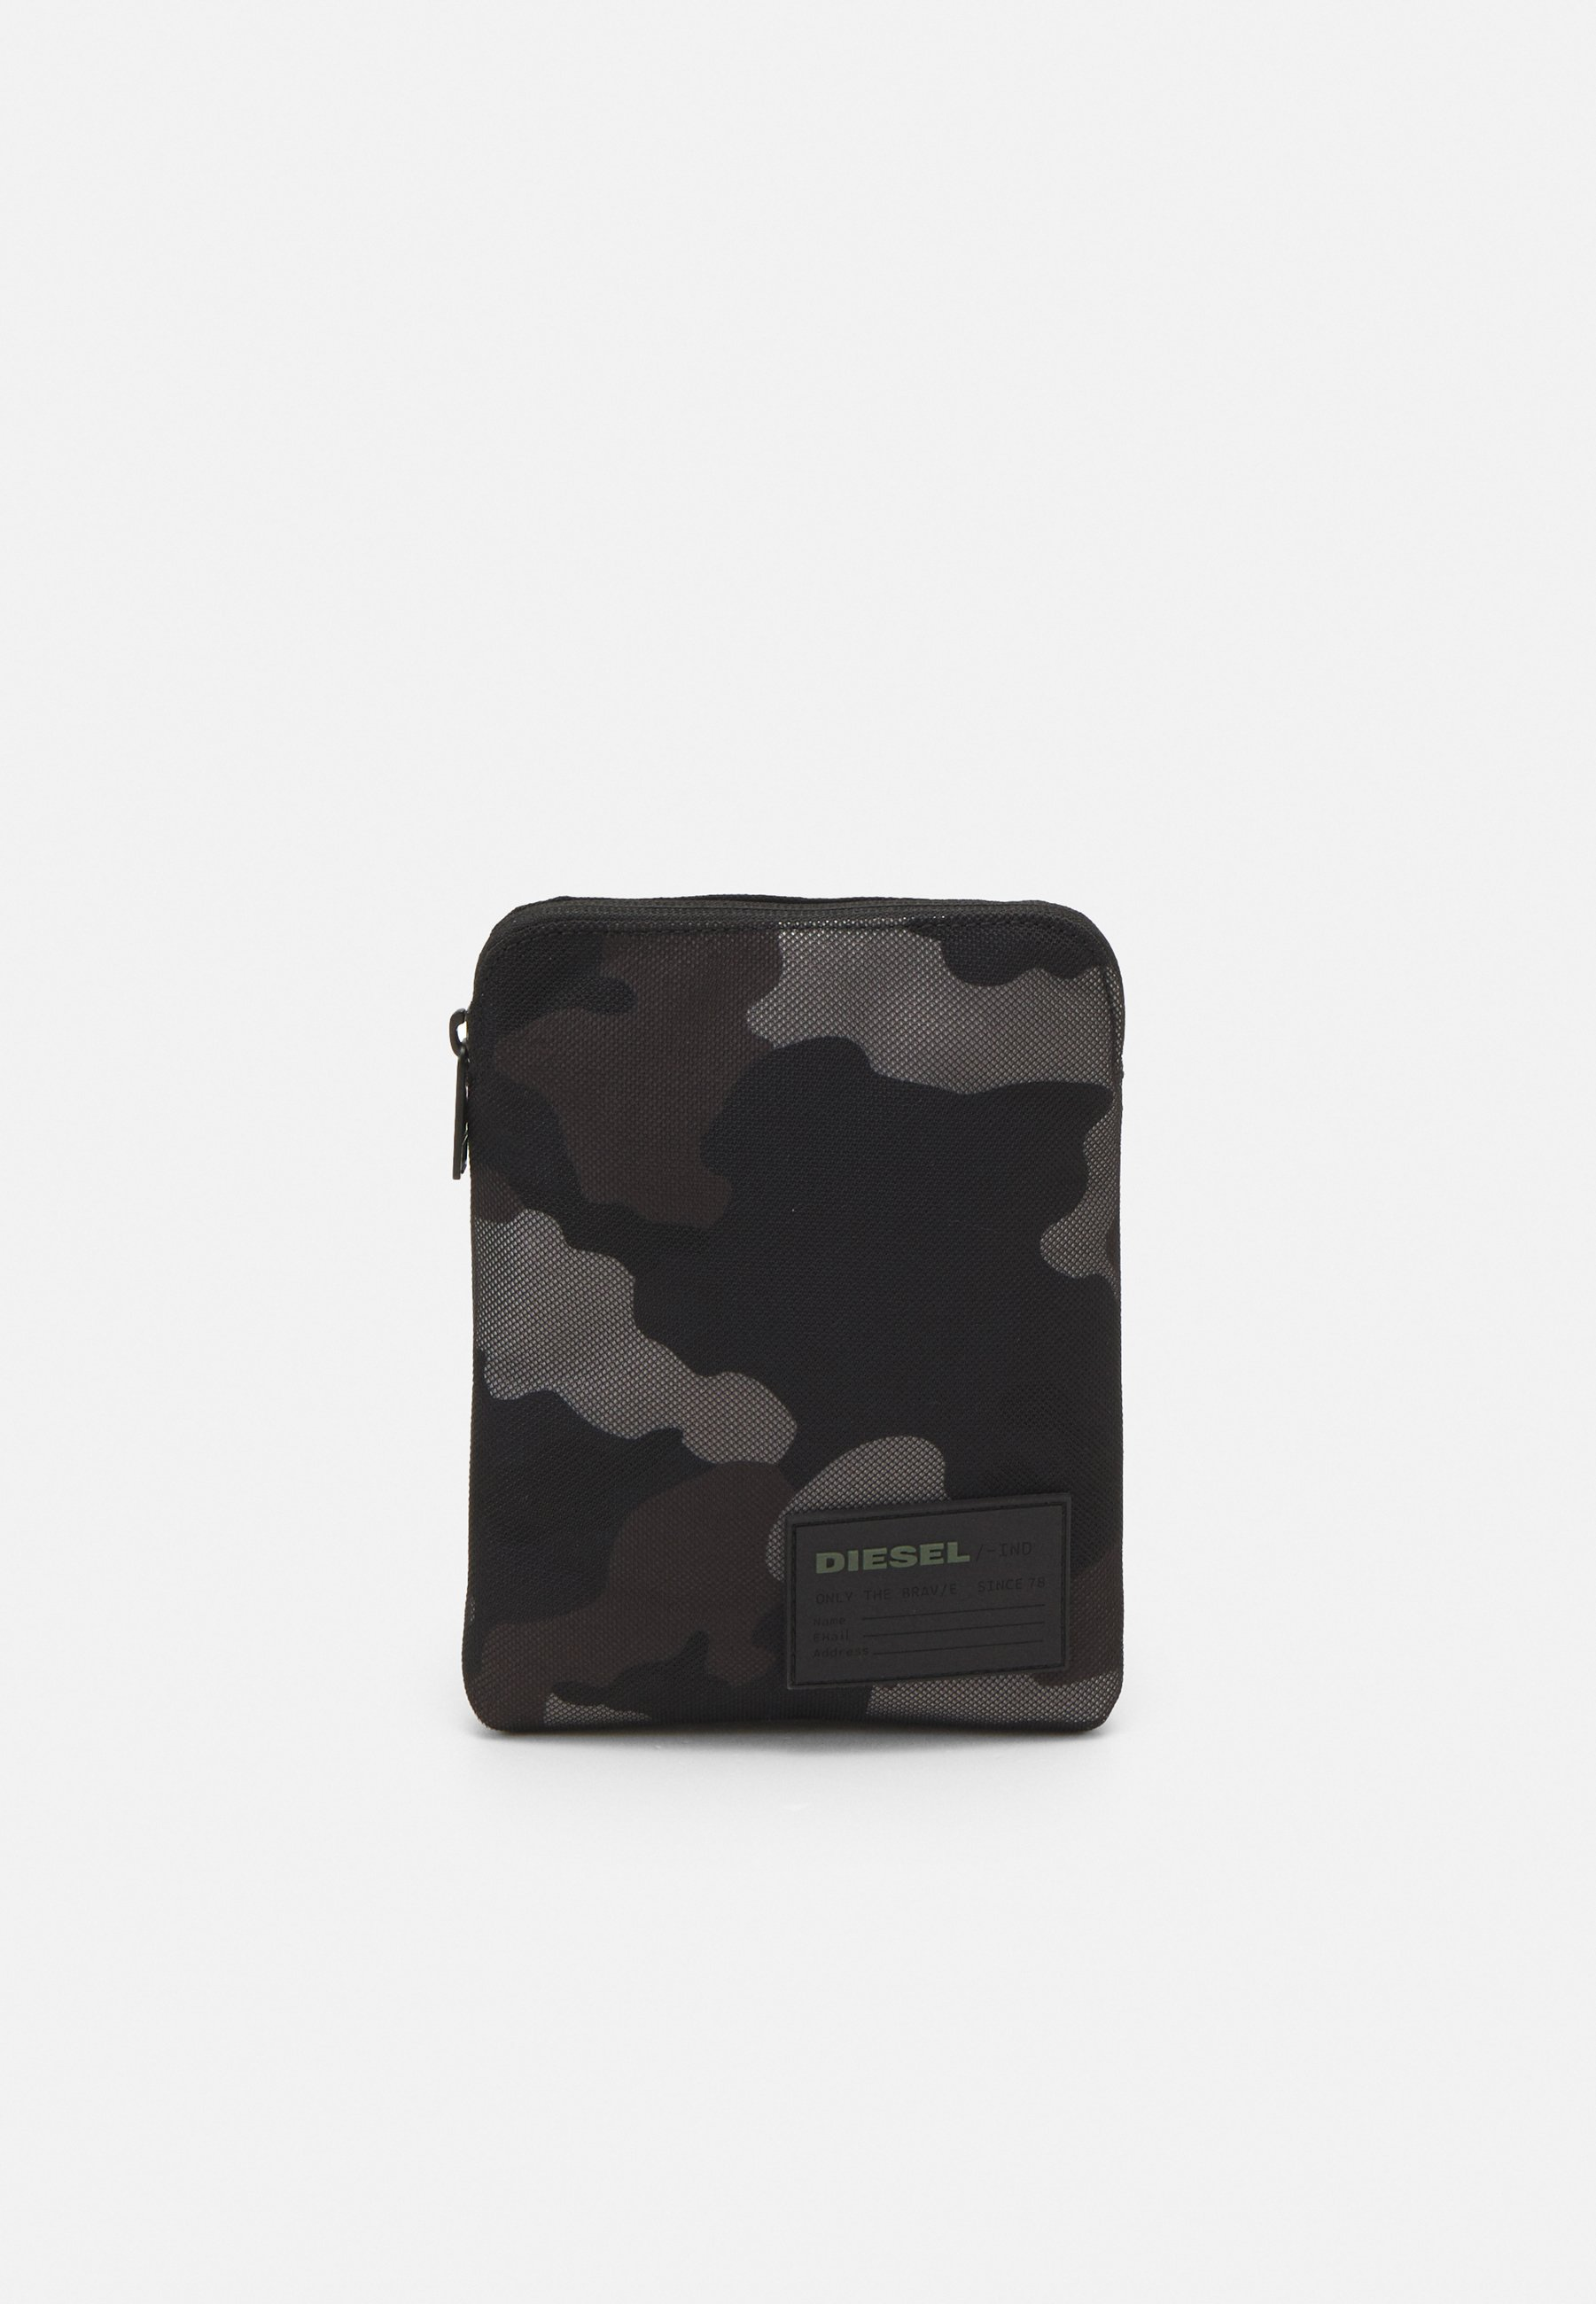 Homme DISCOVER-ME F-DISCOVER CROSS CROSS BODYBAG - Sac bandoulière